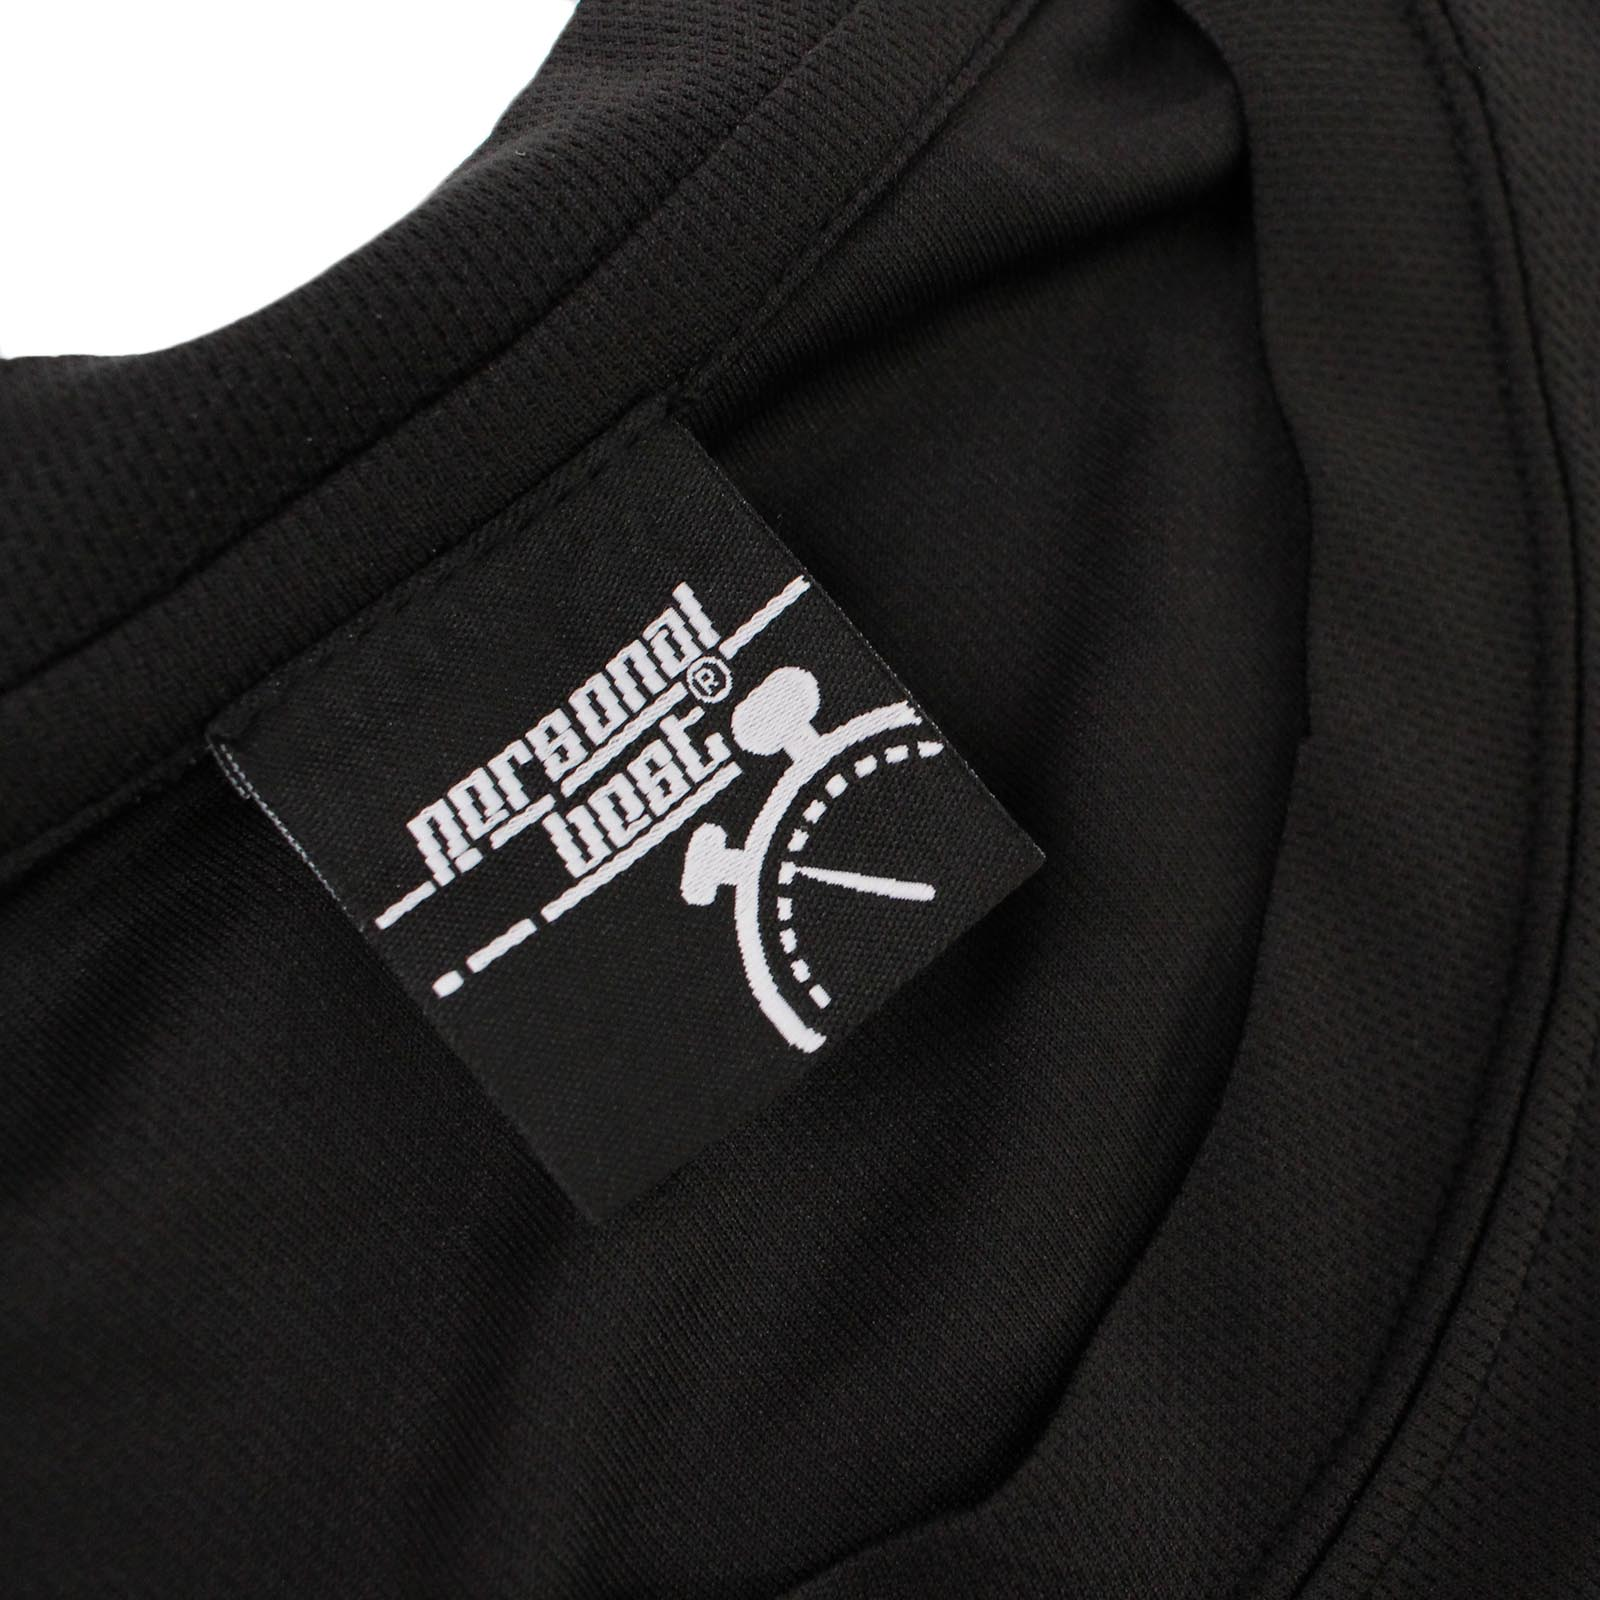 Sweat For A Purpose Premium Dry Fit Breathable Sports T-SHIRT Personal Best